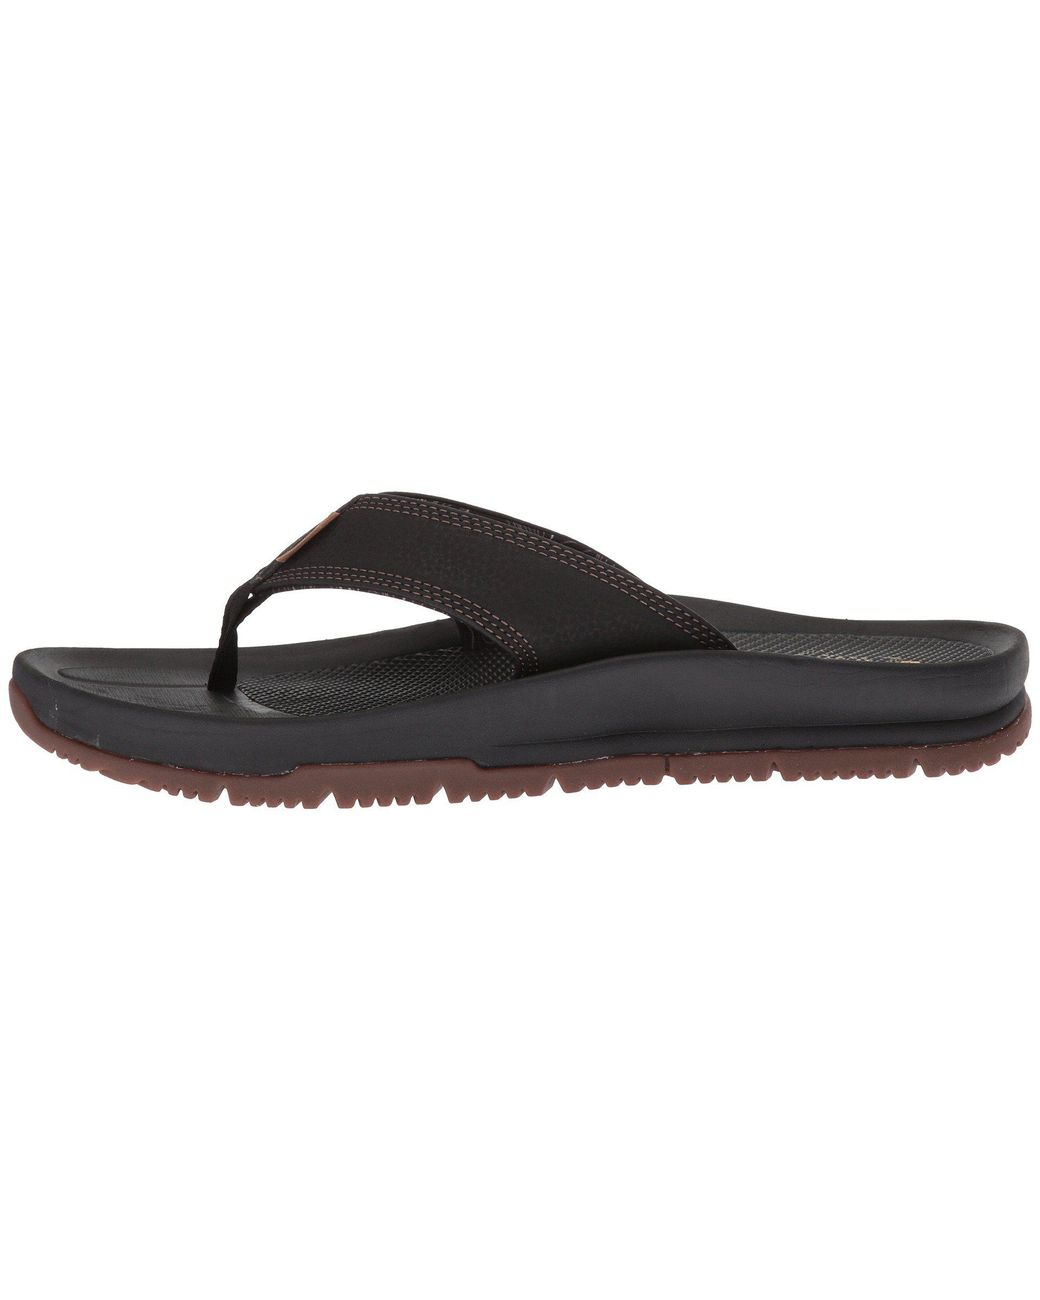 7aee782f77a Lyst - Freewaters Magic Carpet (brown) Men s Sandals in Black for Men